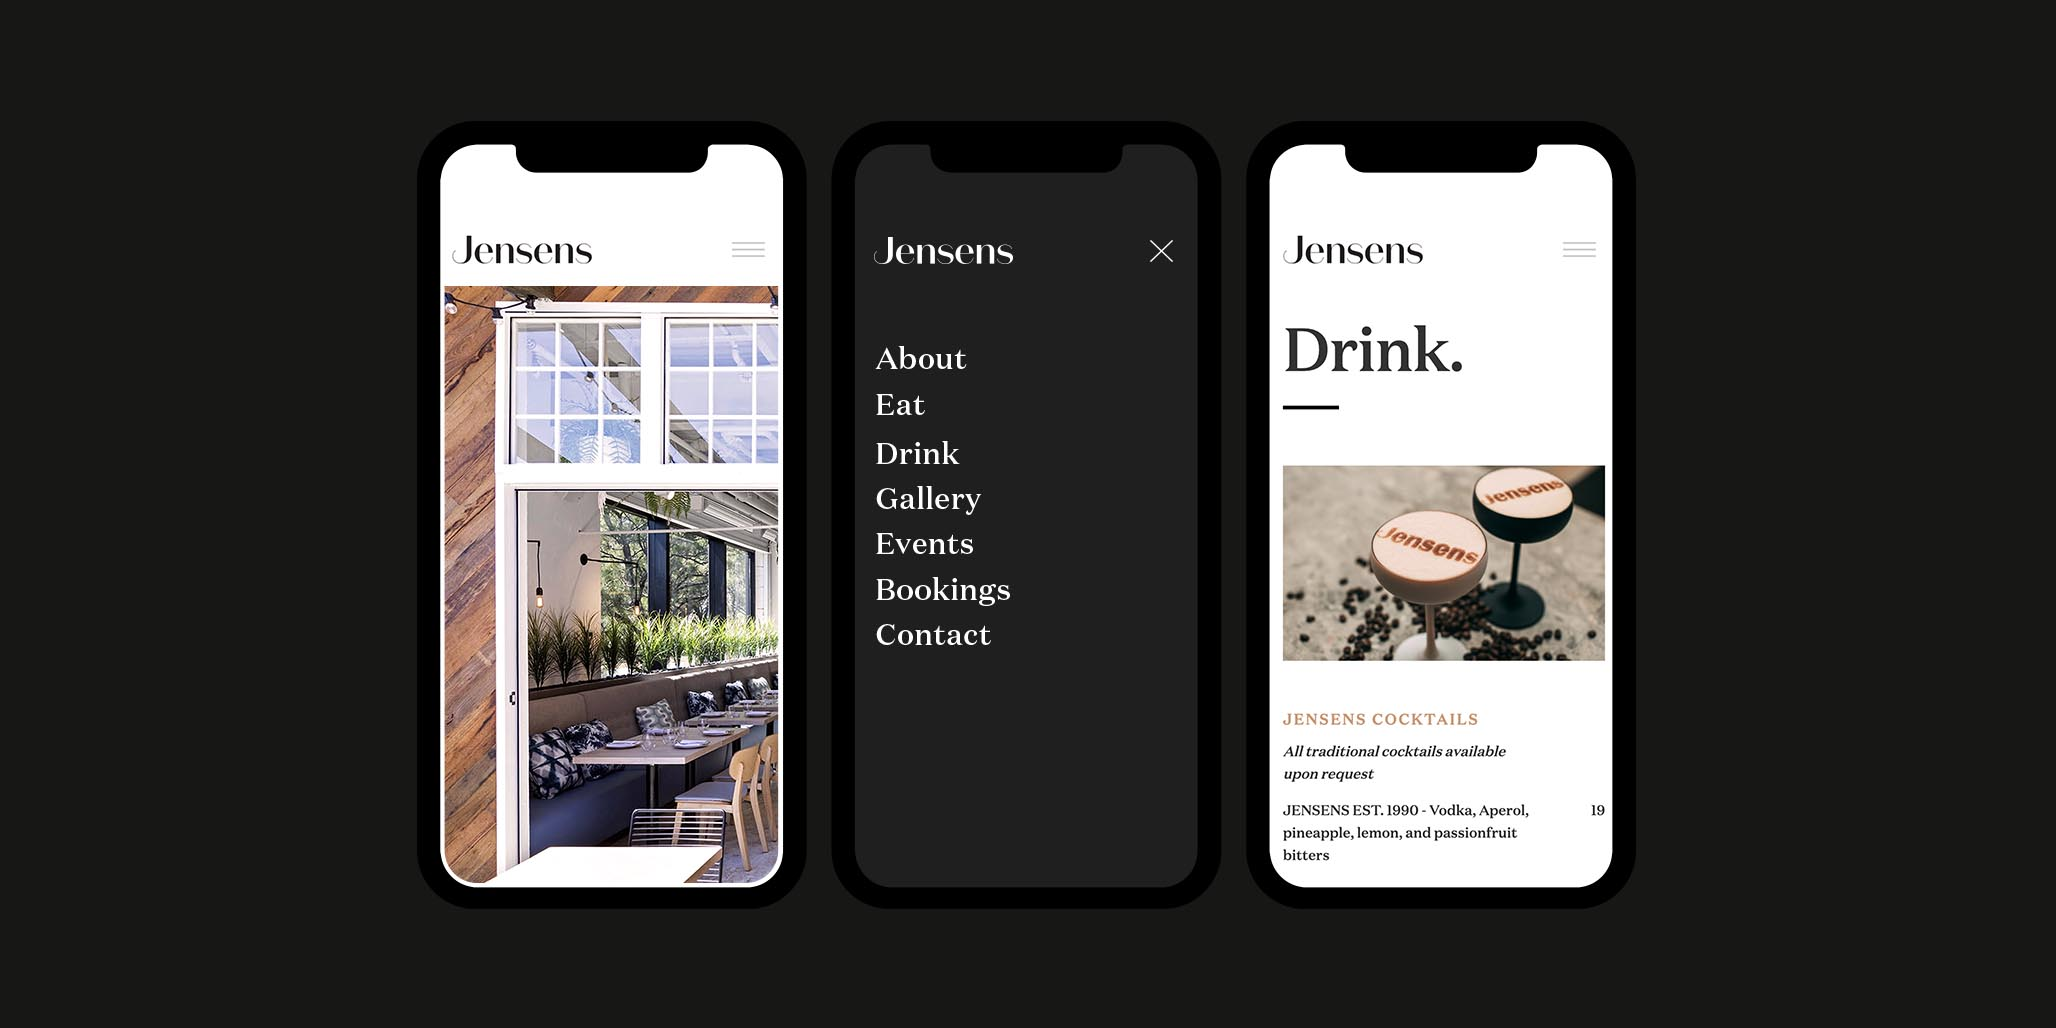 Brand & Website Design project in Sydney for hospitality venue Jensens Restaurant, a leader in the food service industry of Australia, image G